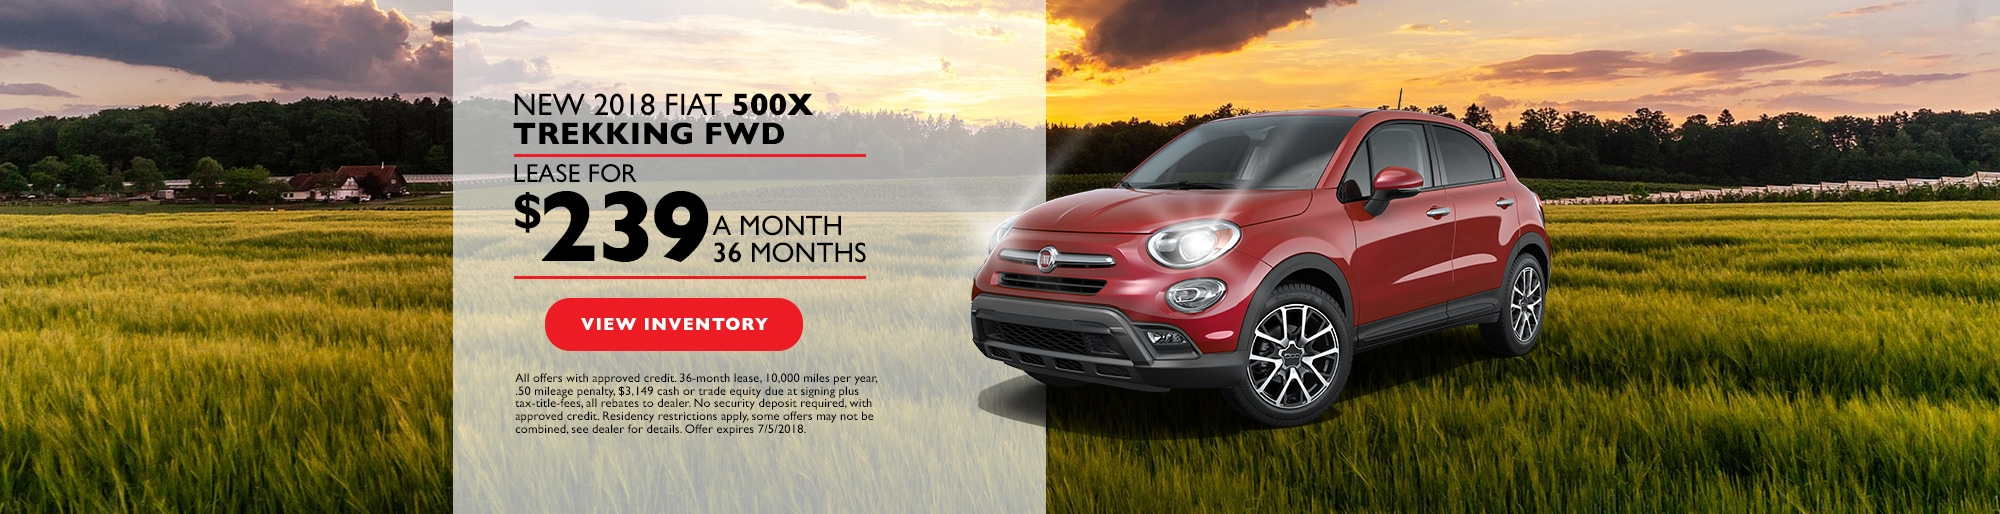 desktop uk website approved official fiat